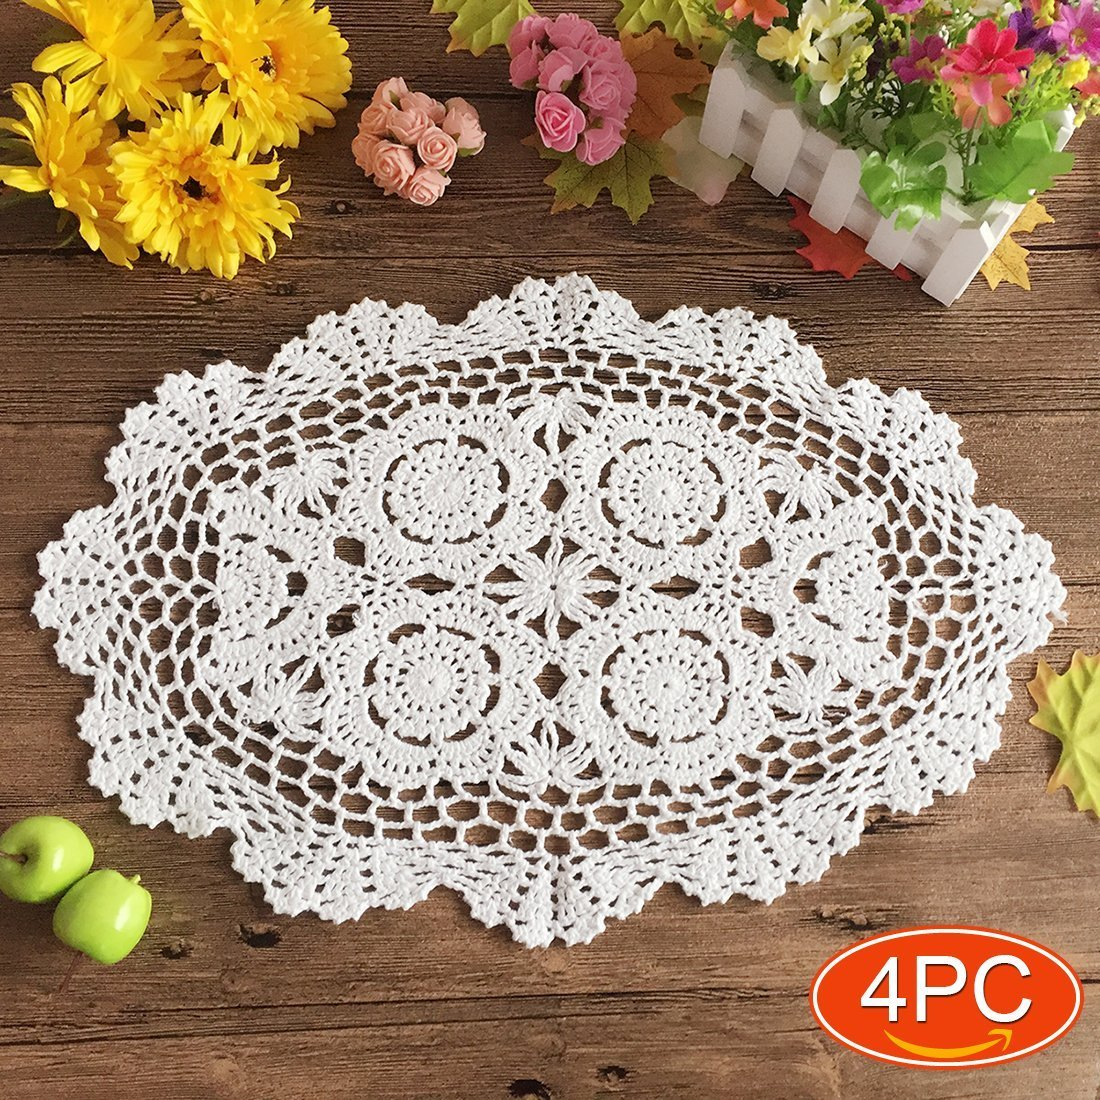 "Elesa Miracle 12 X 18 Inch 4pc Handmade Oval Crochet Cotton Lace Table Placemats Doilies Set, Oval, White (12""x18"" Oval White)"